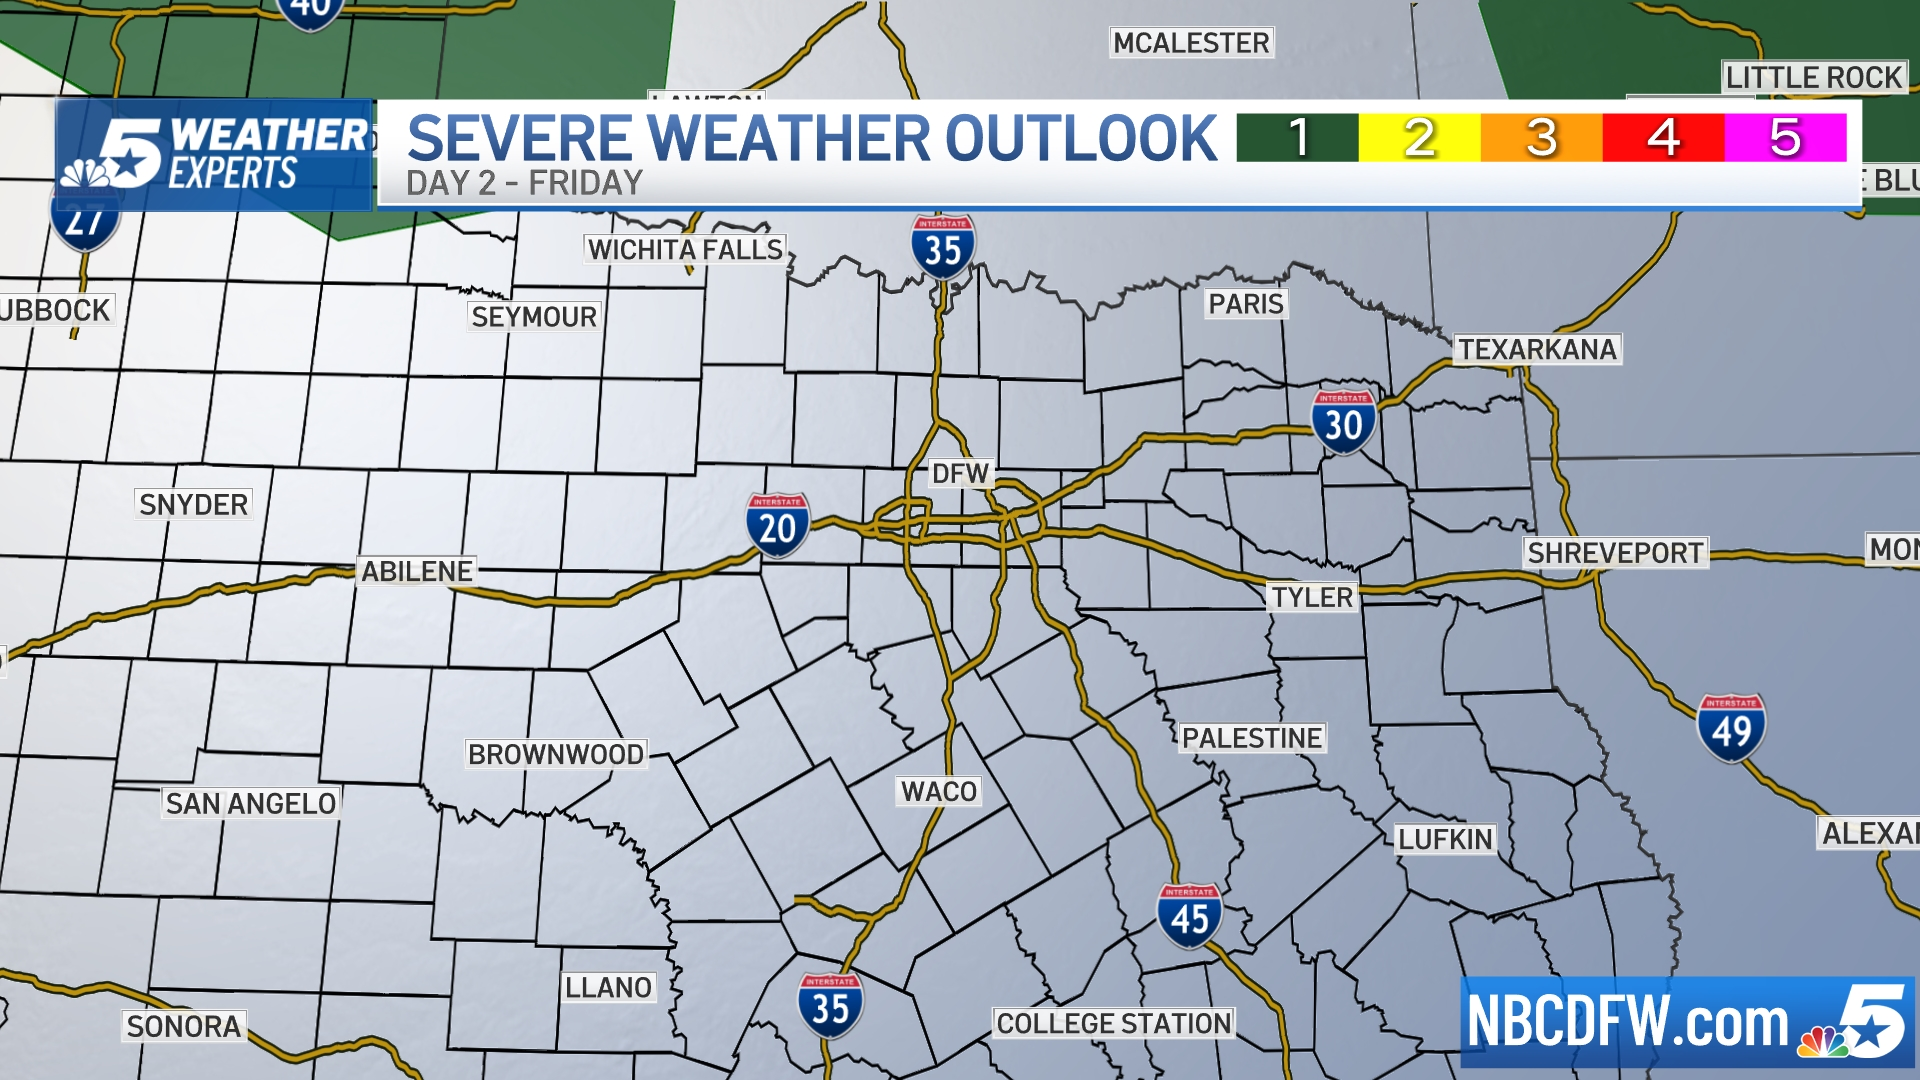 Day 2 Severe Weather Outlook